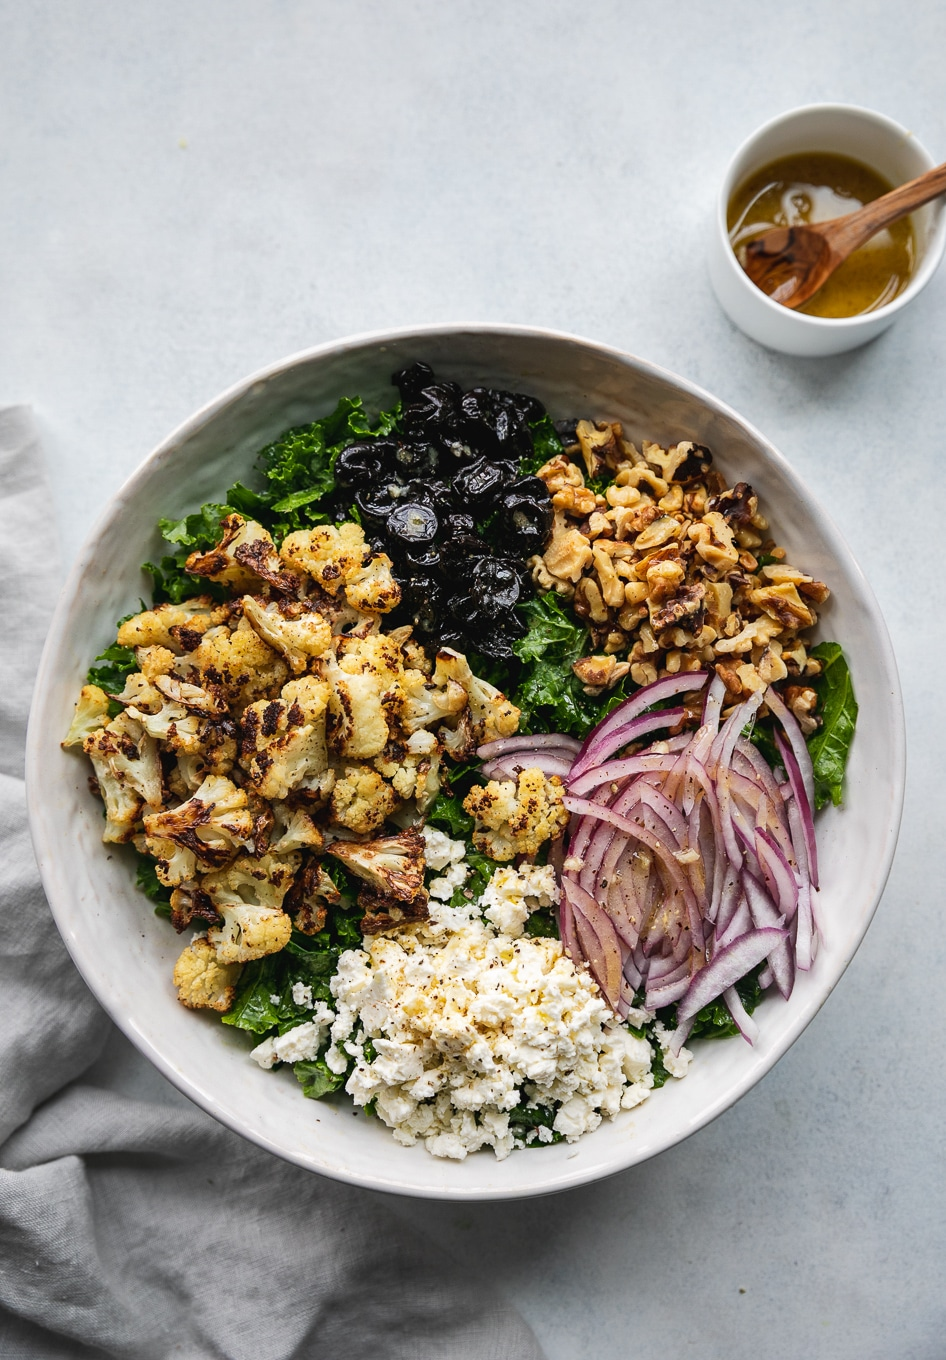 Overhead shot of a bowl of kale salad topped with piles of roasted cauliflower, dried cherries, toasted walnuts, red onion, and feta